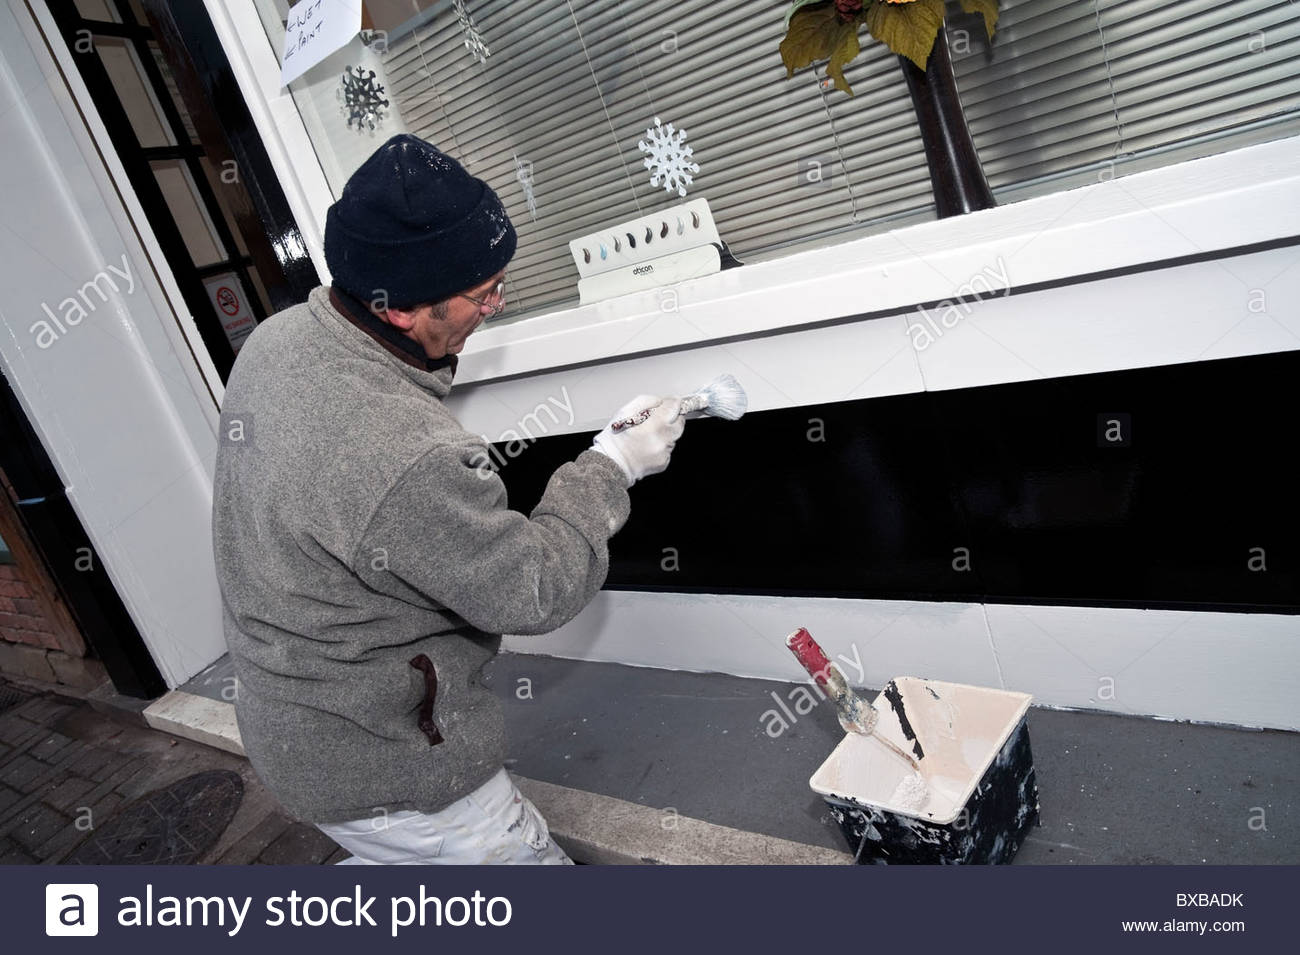 Painter & decorator at work painting a storefront, UK. Painter working outside on the exterior of a shop. Wet - Stock Image